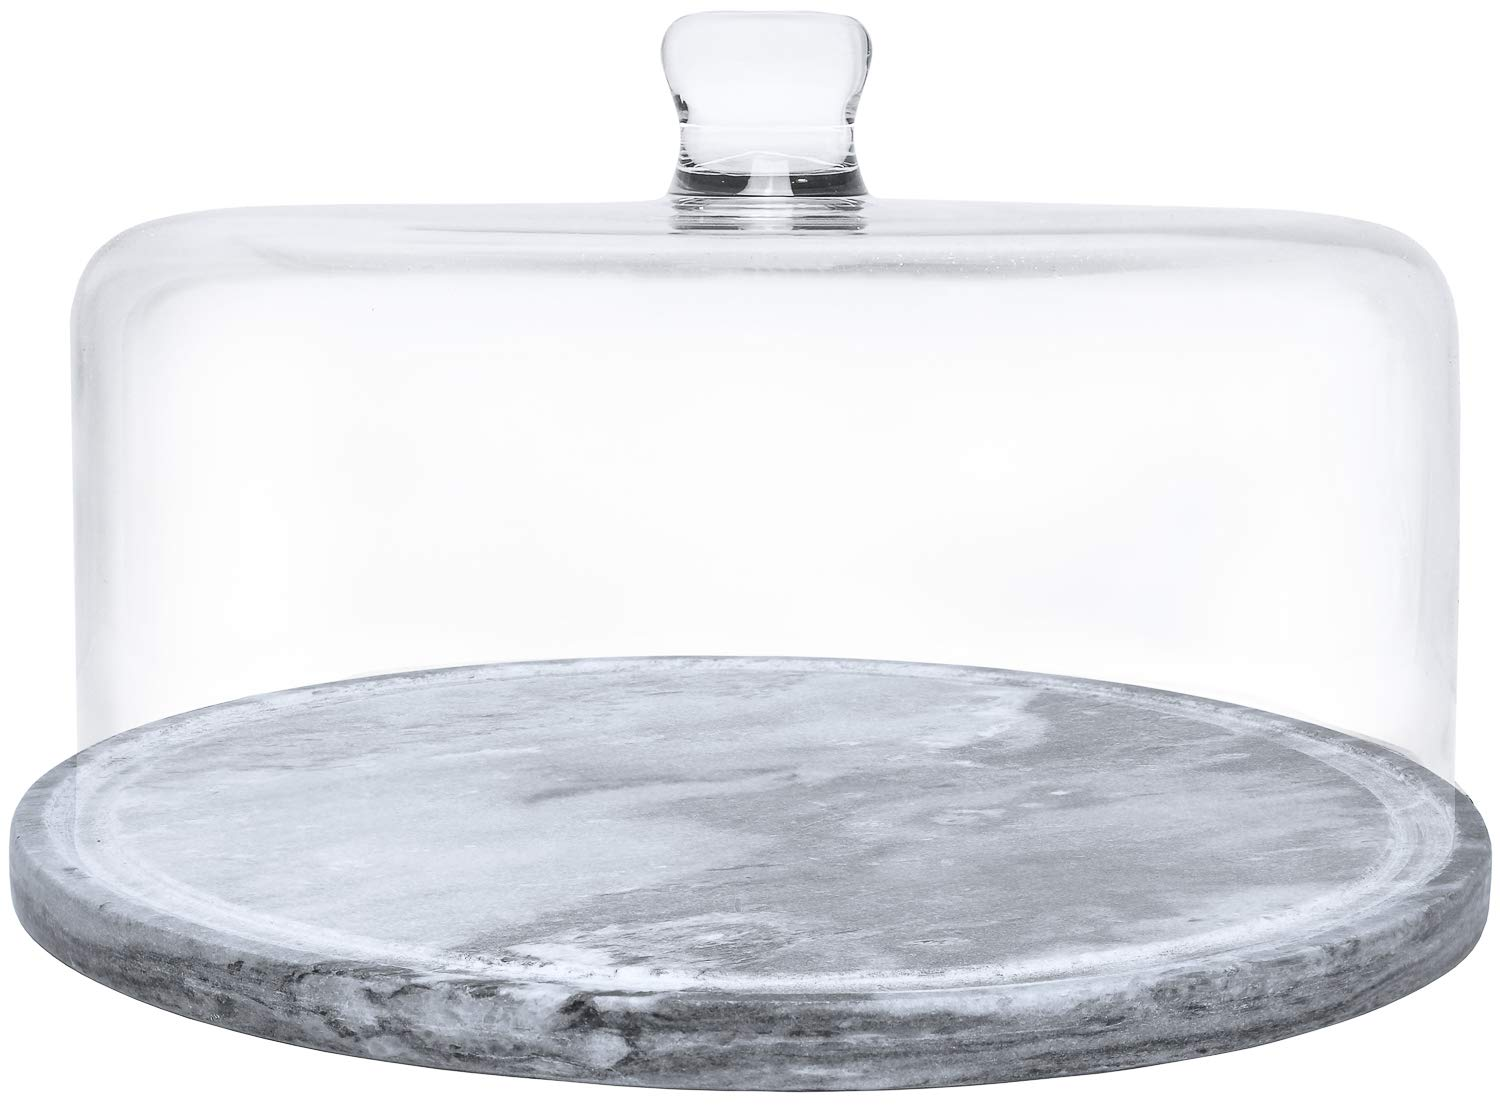 Galashield Marble Cake Stand with Glass Cover Dome